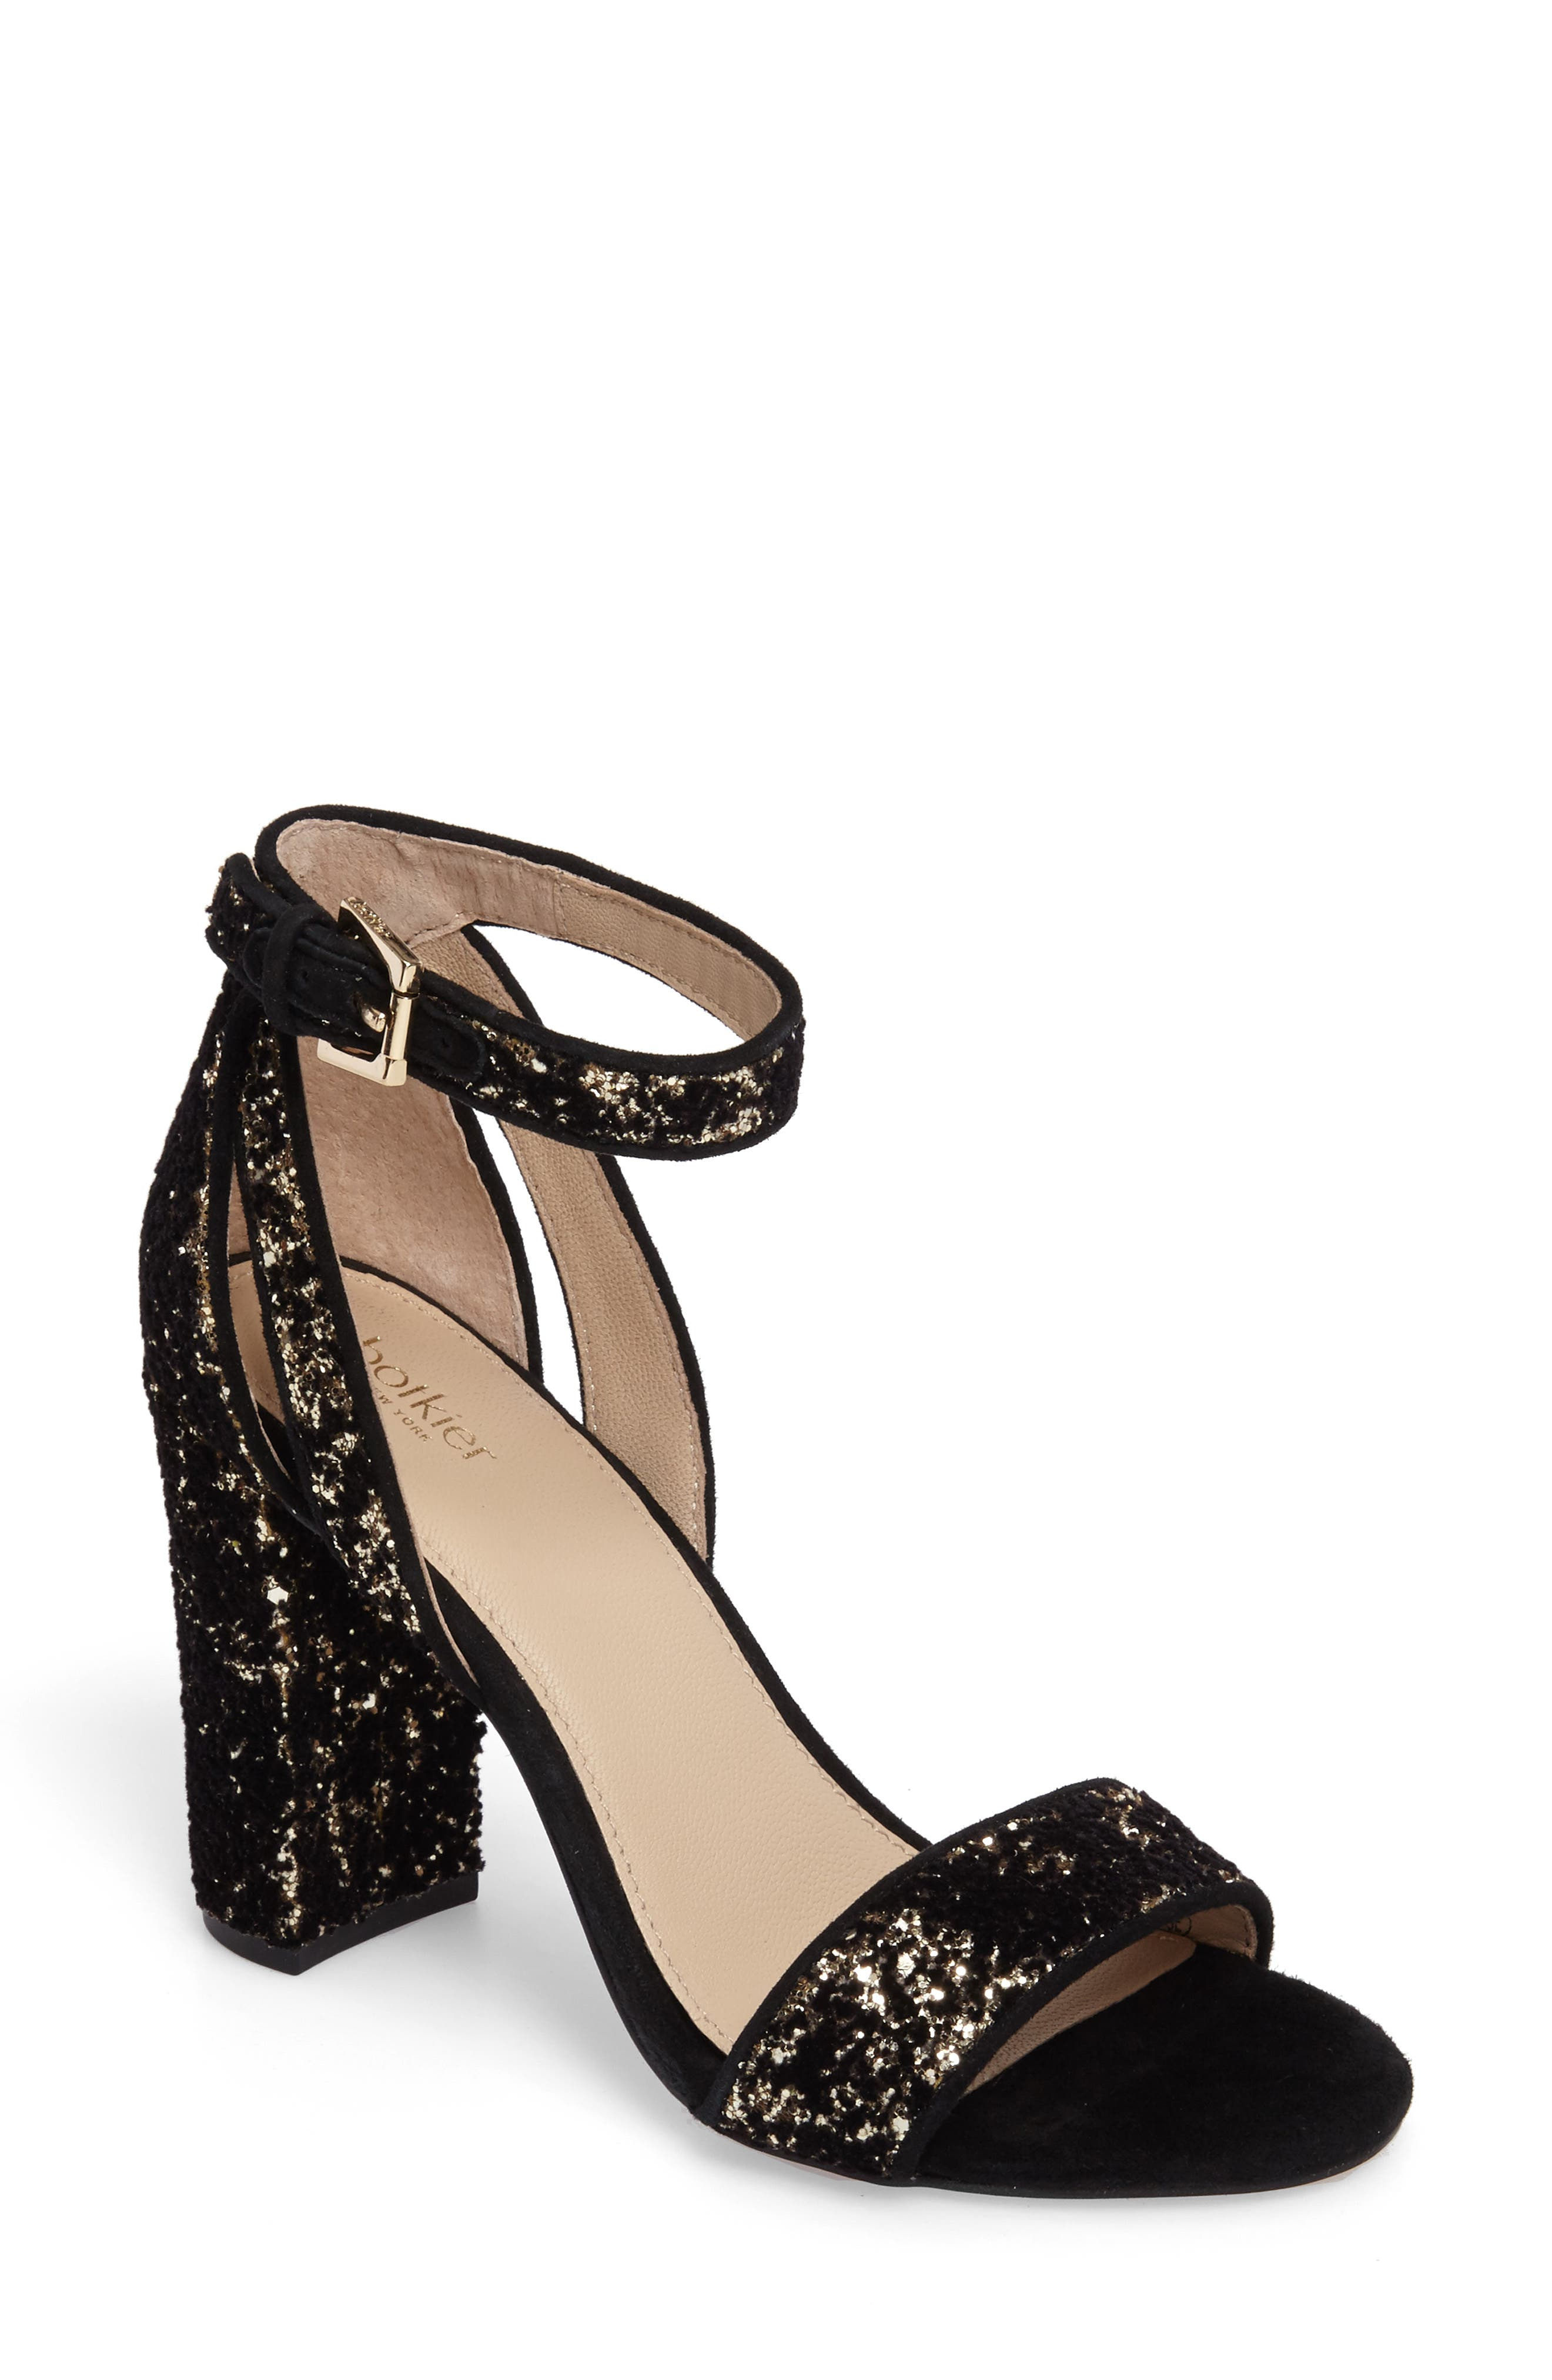 Alternate Image 1 Selected - Botkier Gianna Ankle Strap Sandal (Women)